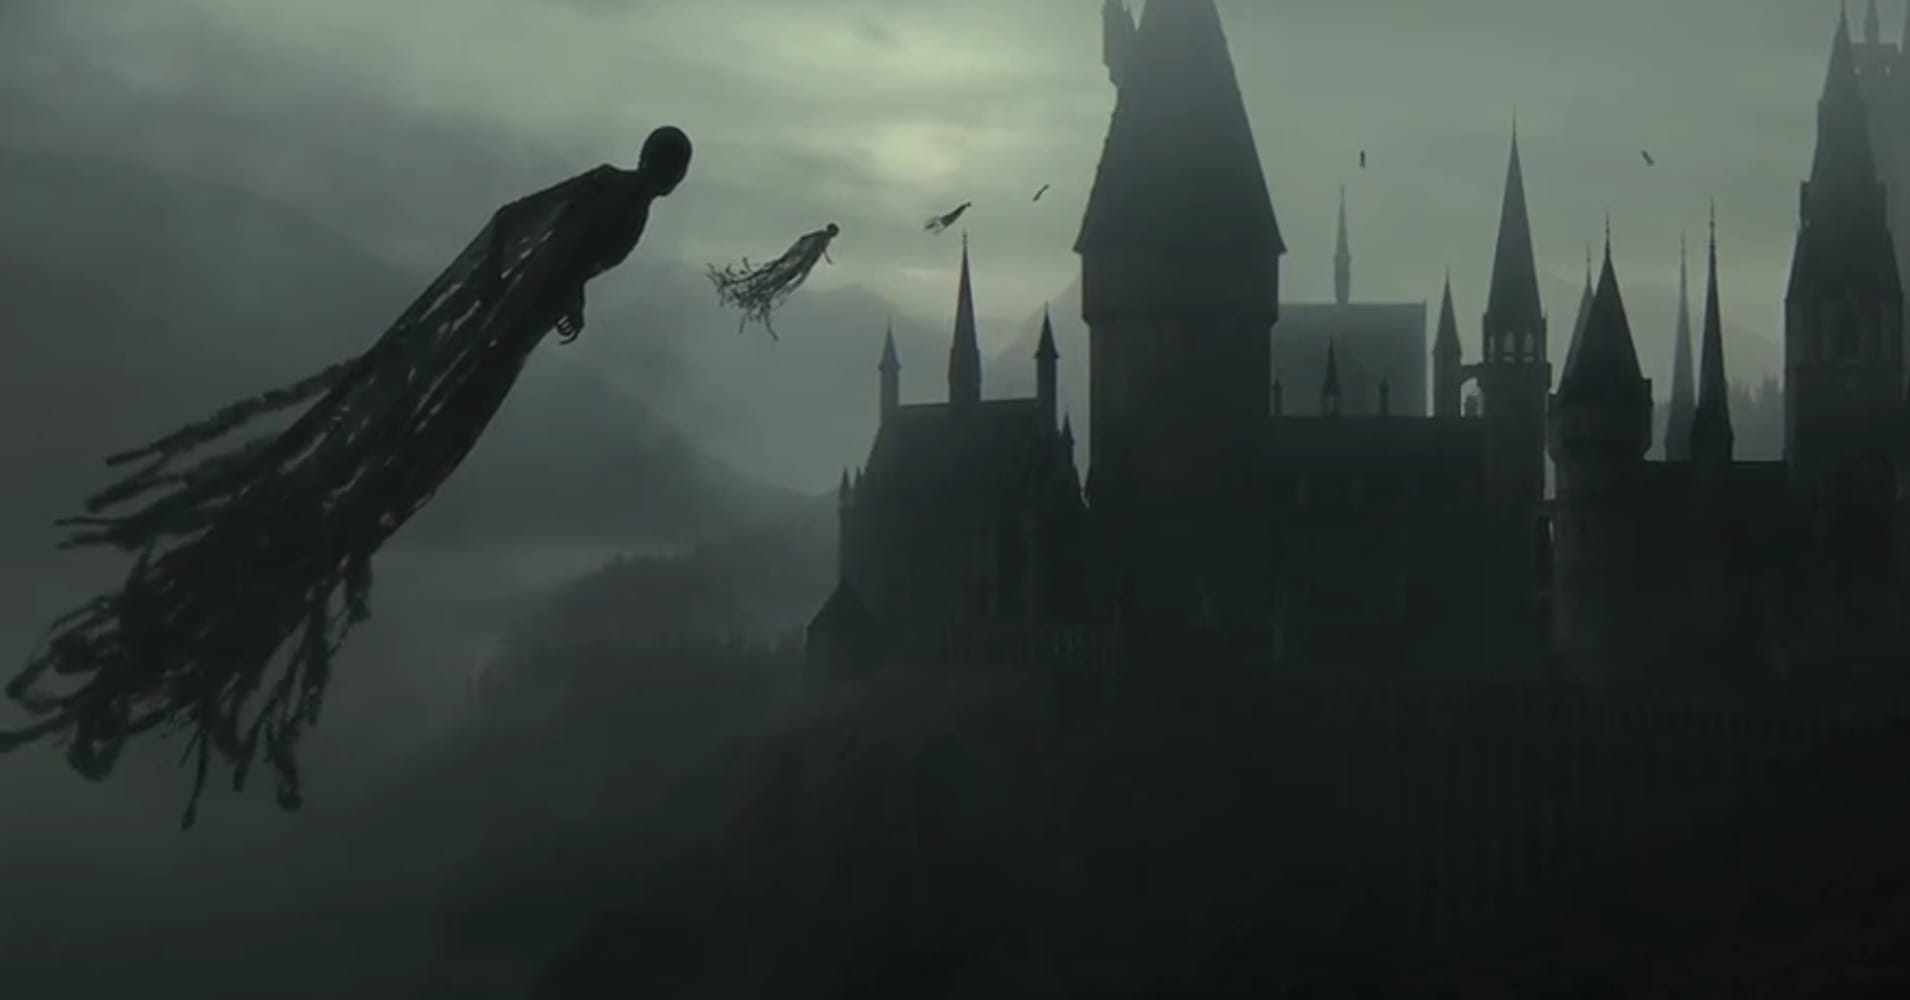 Dementors from the Harry Potter films.